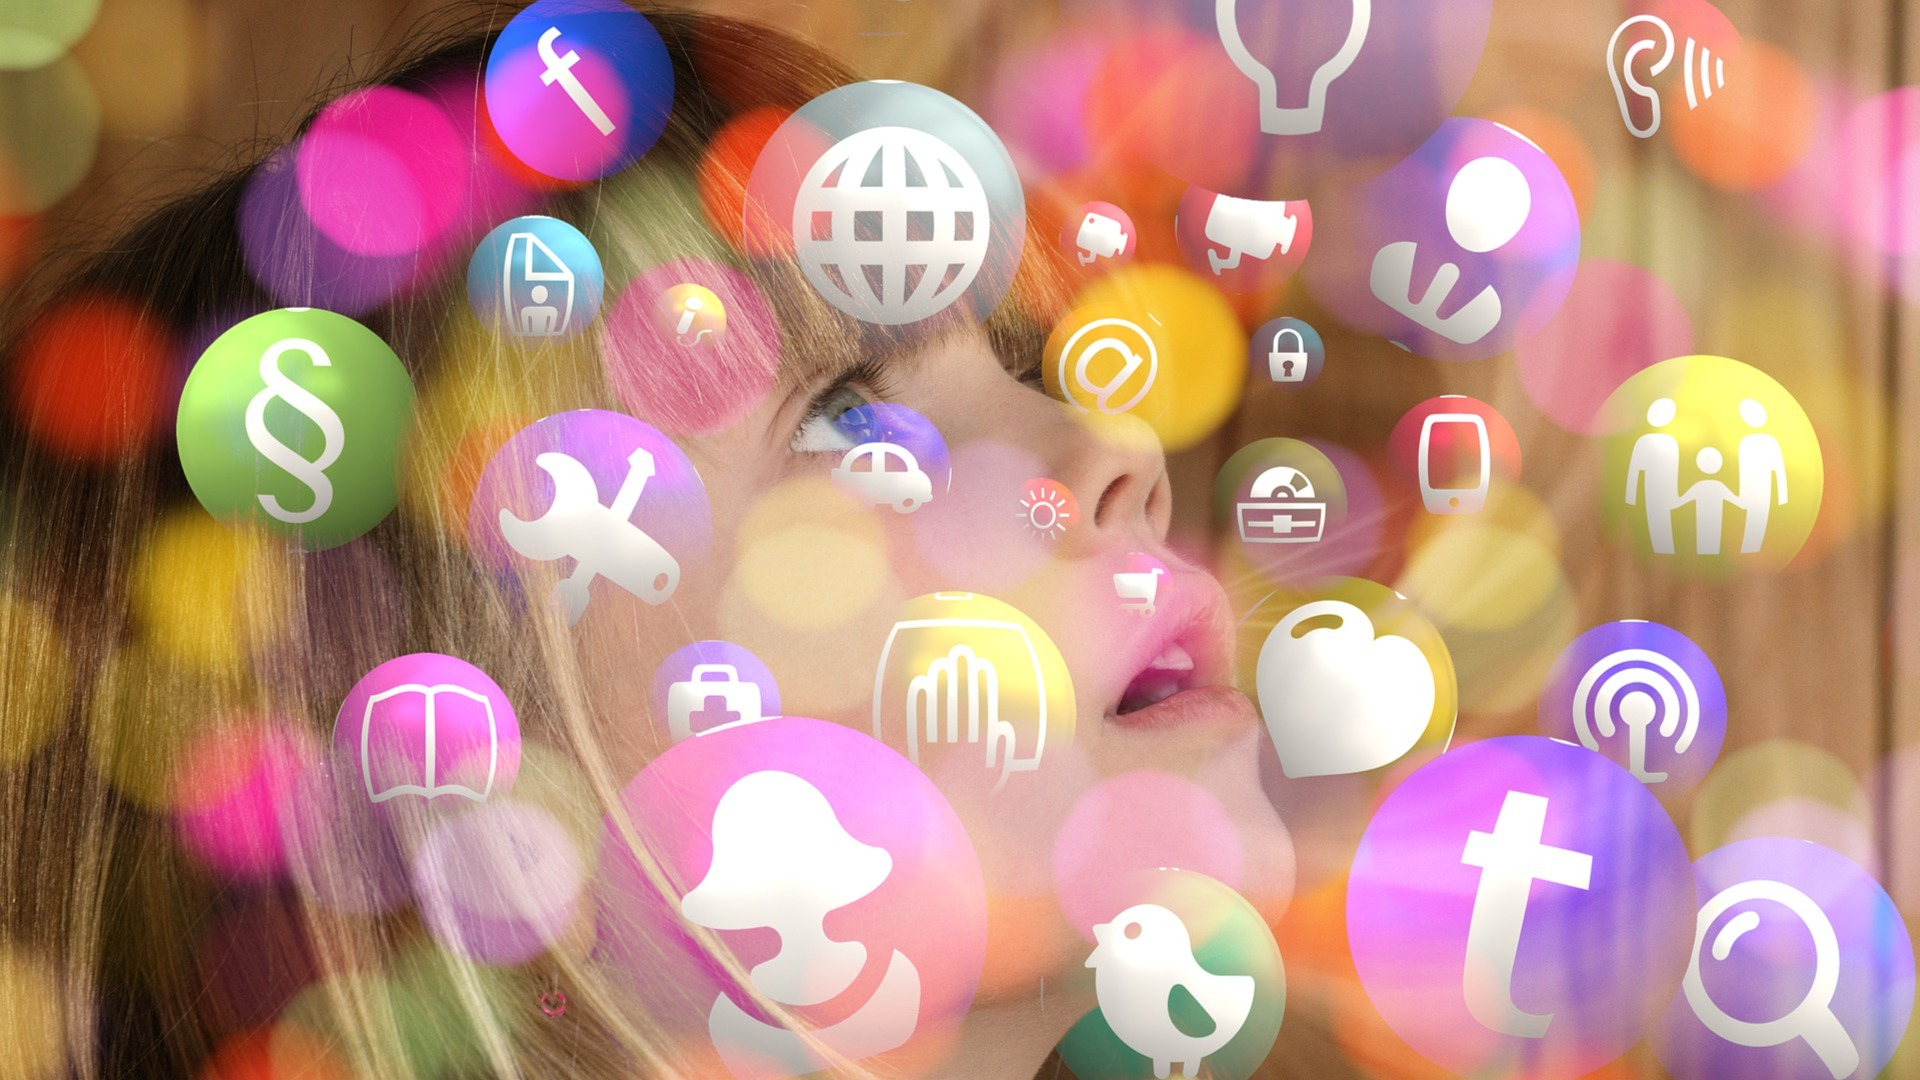 The Social Media Conundrum - Why we need to talk about it!